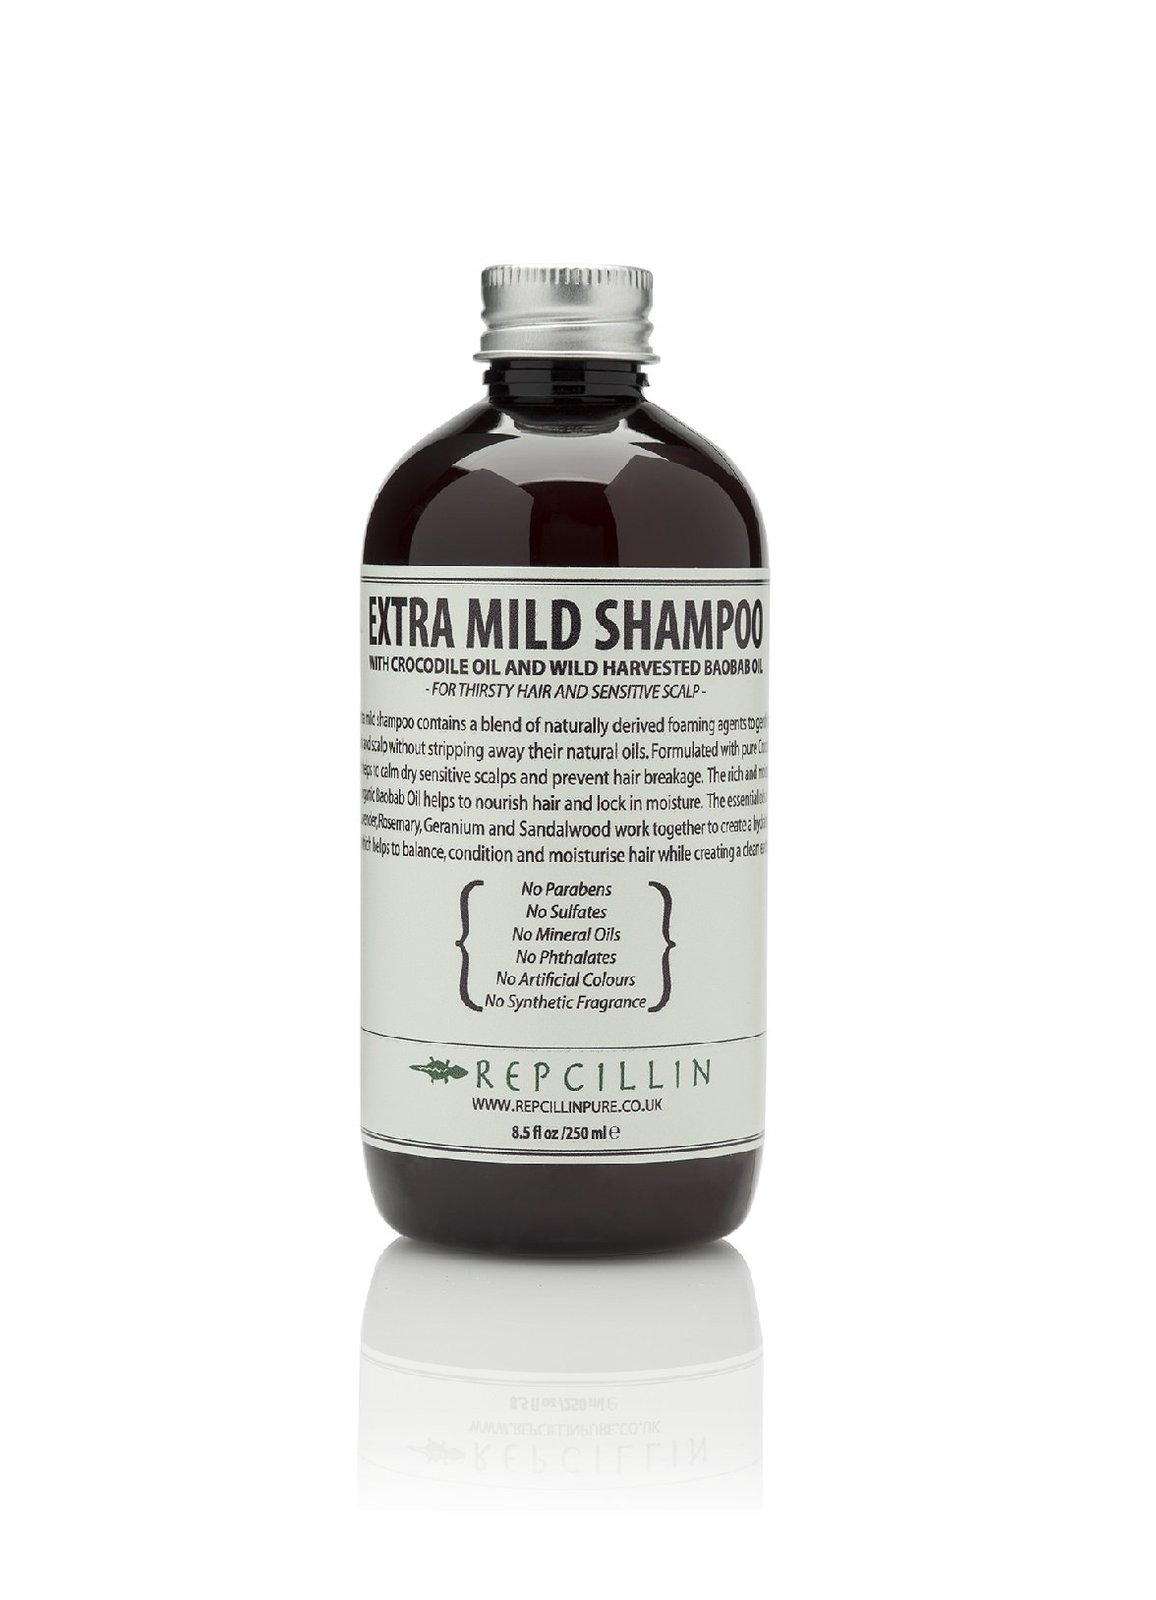 Repcillin Extra Mild Shampoo with Crocodile Oil and Wild Harvested Baobab Oil...